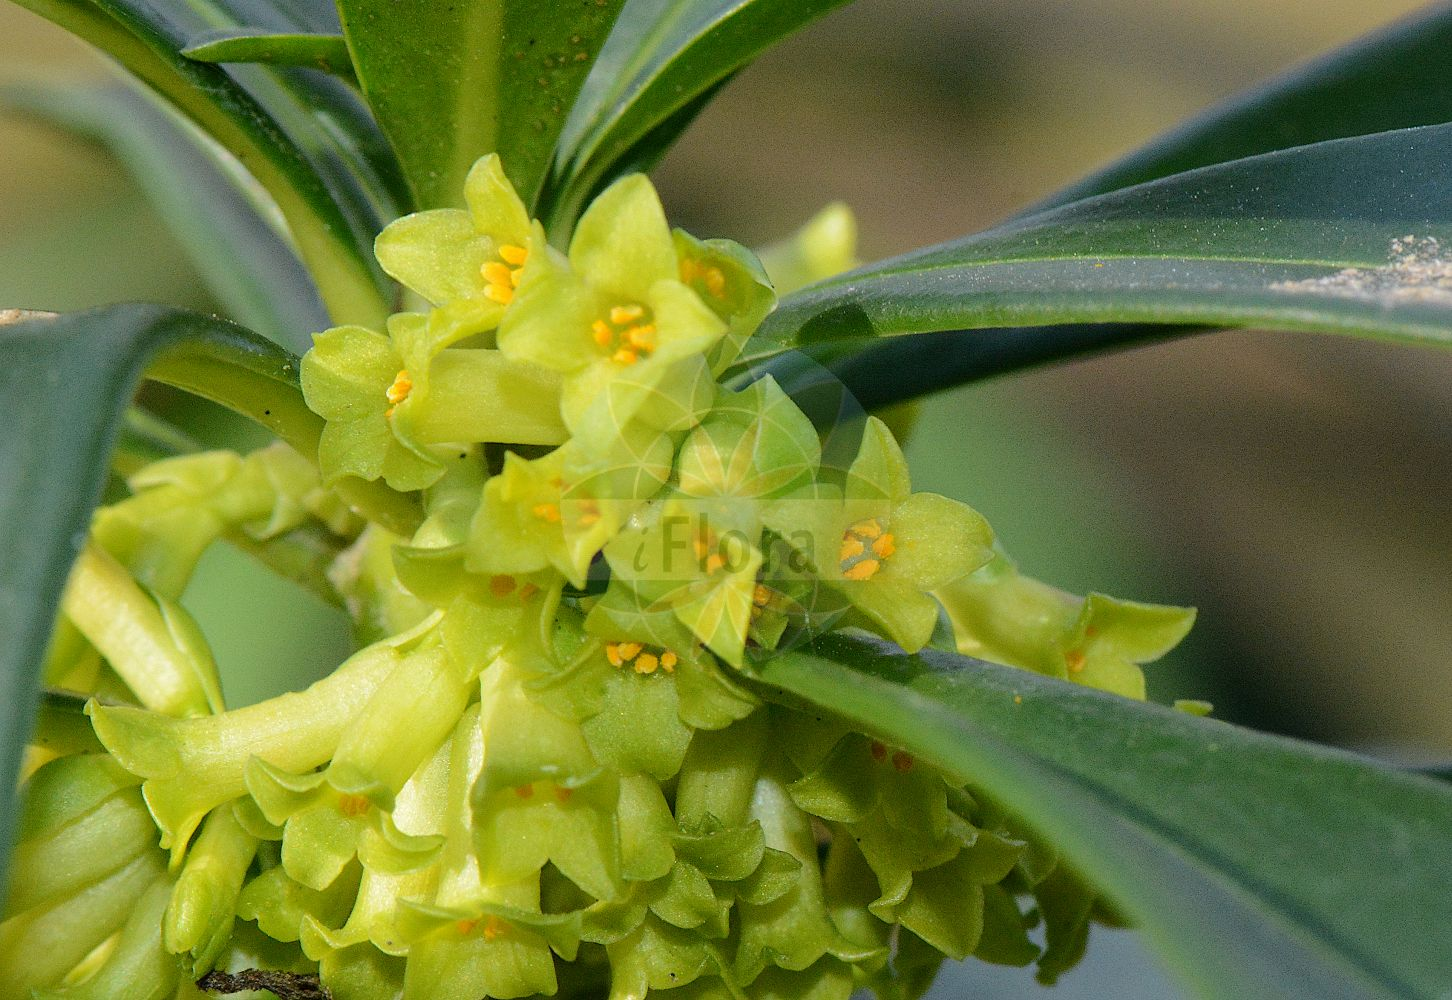 Foto von Daphne laureola (Lorbeer-Seidelbast - Spurge-laurel). Das Foto wurde in Mainz, Rheinland-Pfalz, Deutschland aufgenommen. ---- Photo of Daphne laureola (Lorbeer-Seidelbast - Spurge-laurel).The picture was taken in Mainz, Rhineland-Palatinate, Germany. (Daphne laureola,Lorbeer-Seidelbast,Spurge-laurel,Daphne philippi,Wood Laurel,Daphne,Seidelbast,Daphne,Thymelaeaceae,Spatzenzungengewaechse;Seidelbastgewaechse,Daphne family)